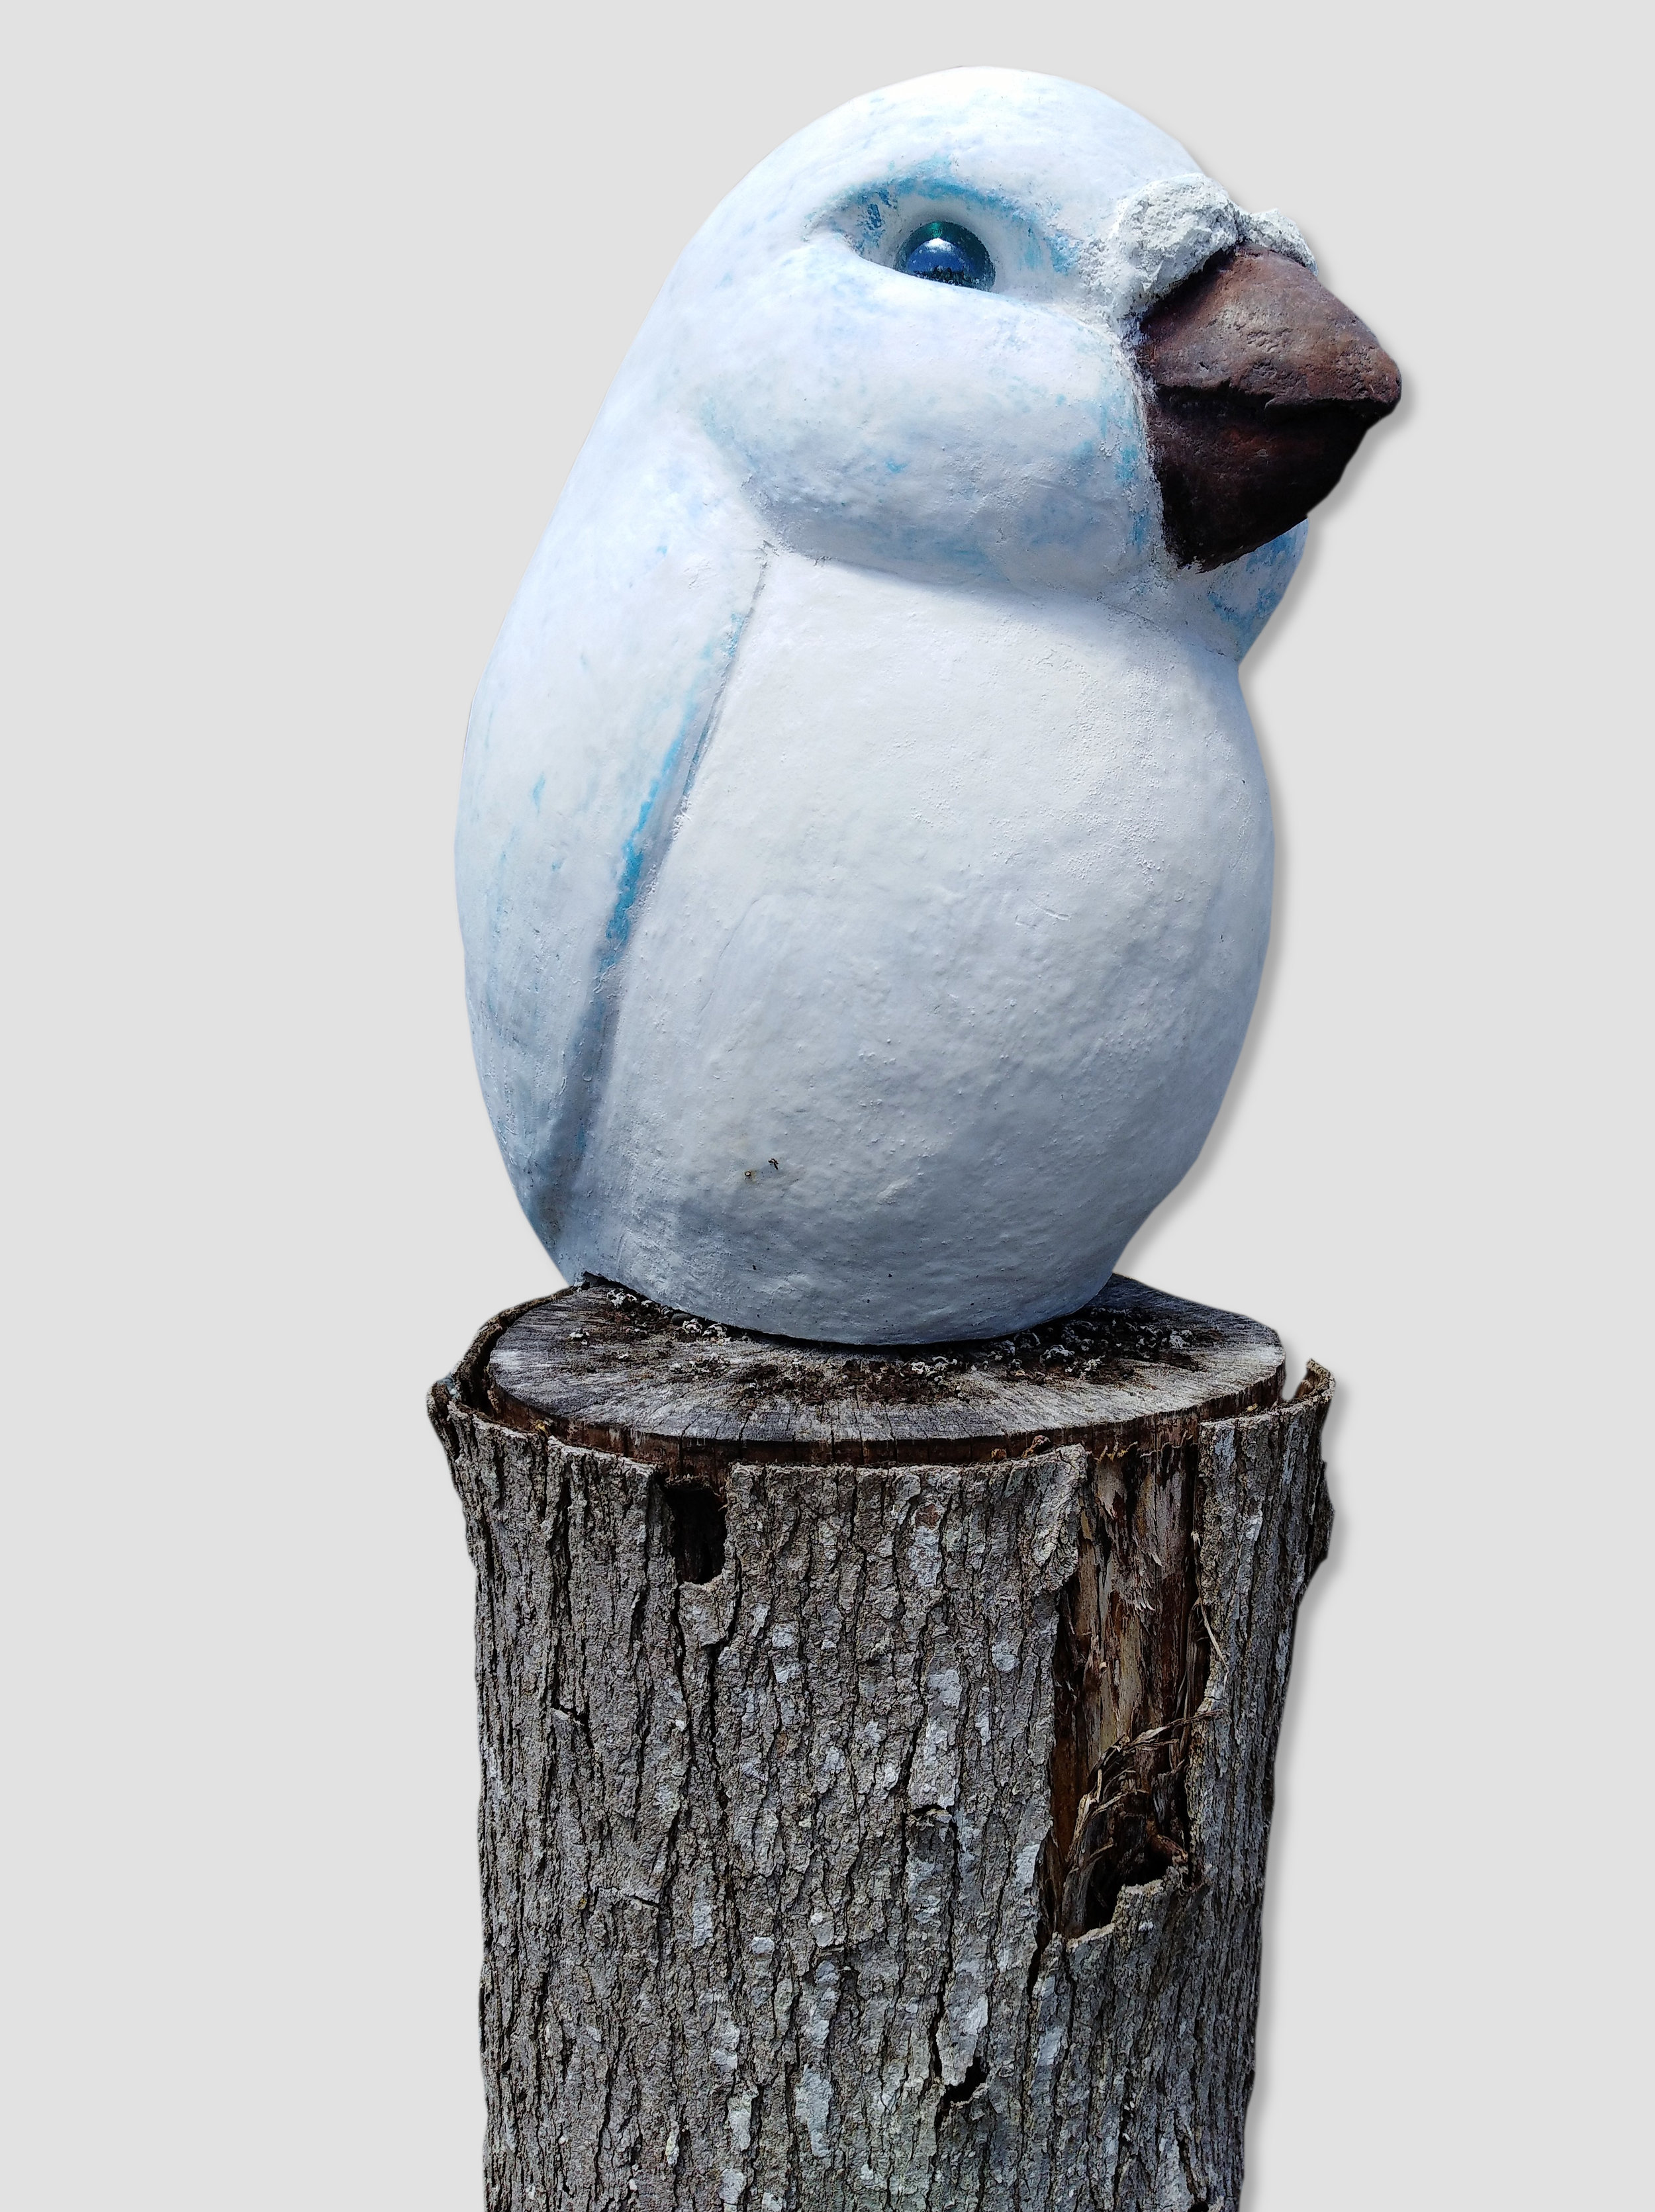 Big Bertha (Blue & Grey)  John Phillips, artis fiberclay, indoor/outdoor, stump for display only, mounted on peg (inc.)  $490.00